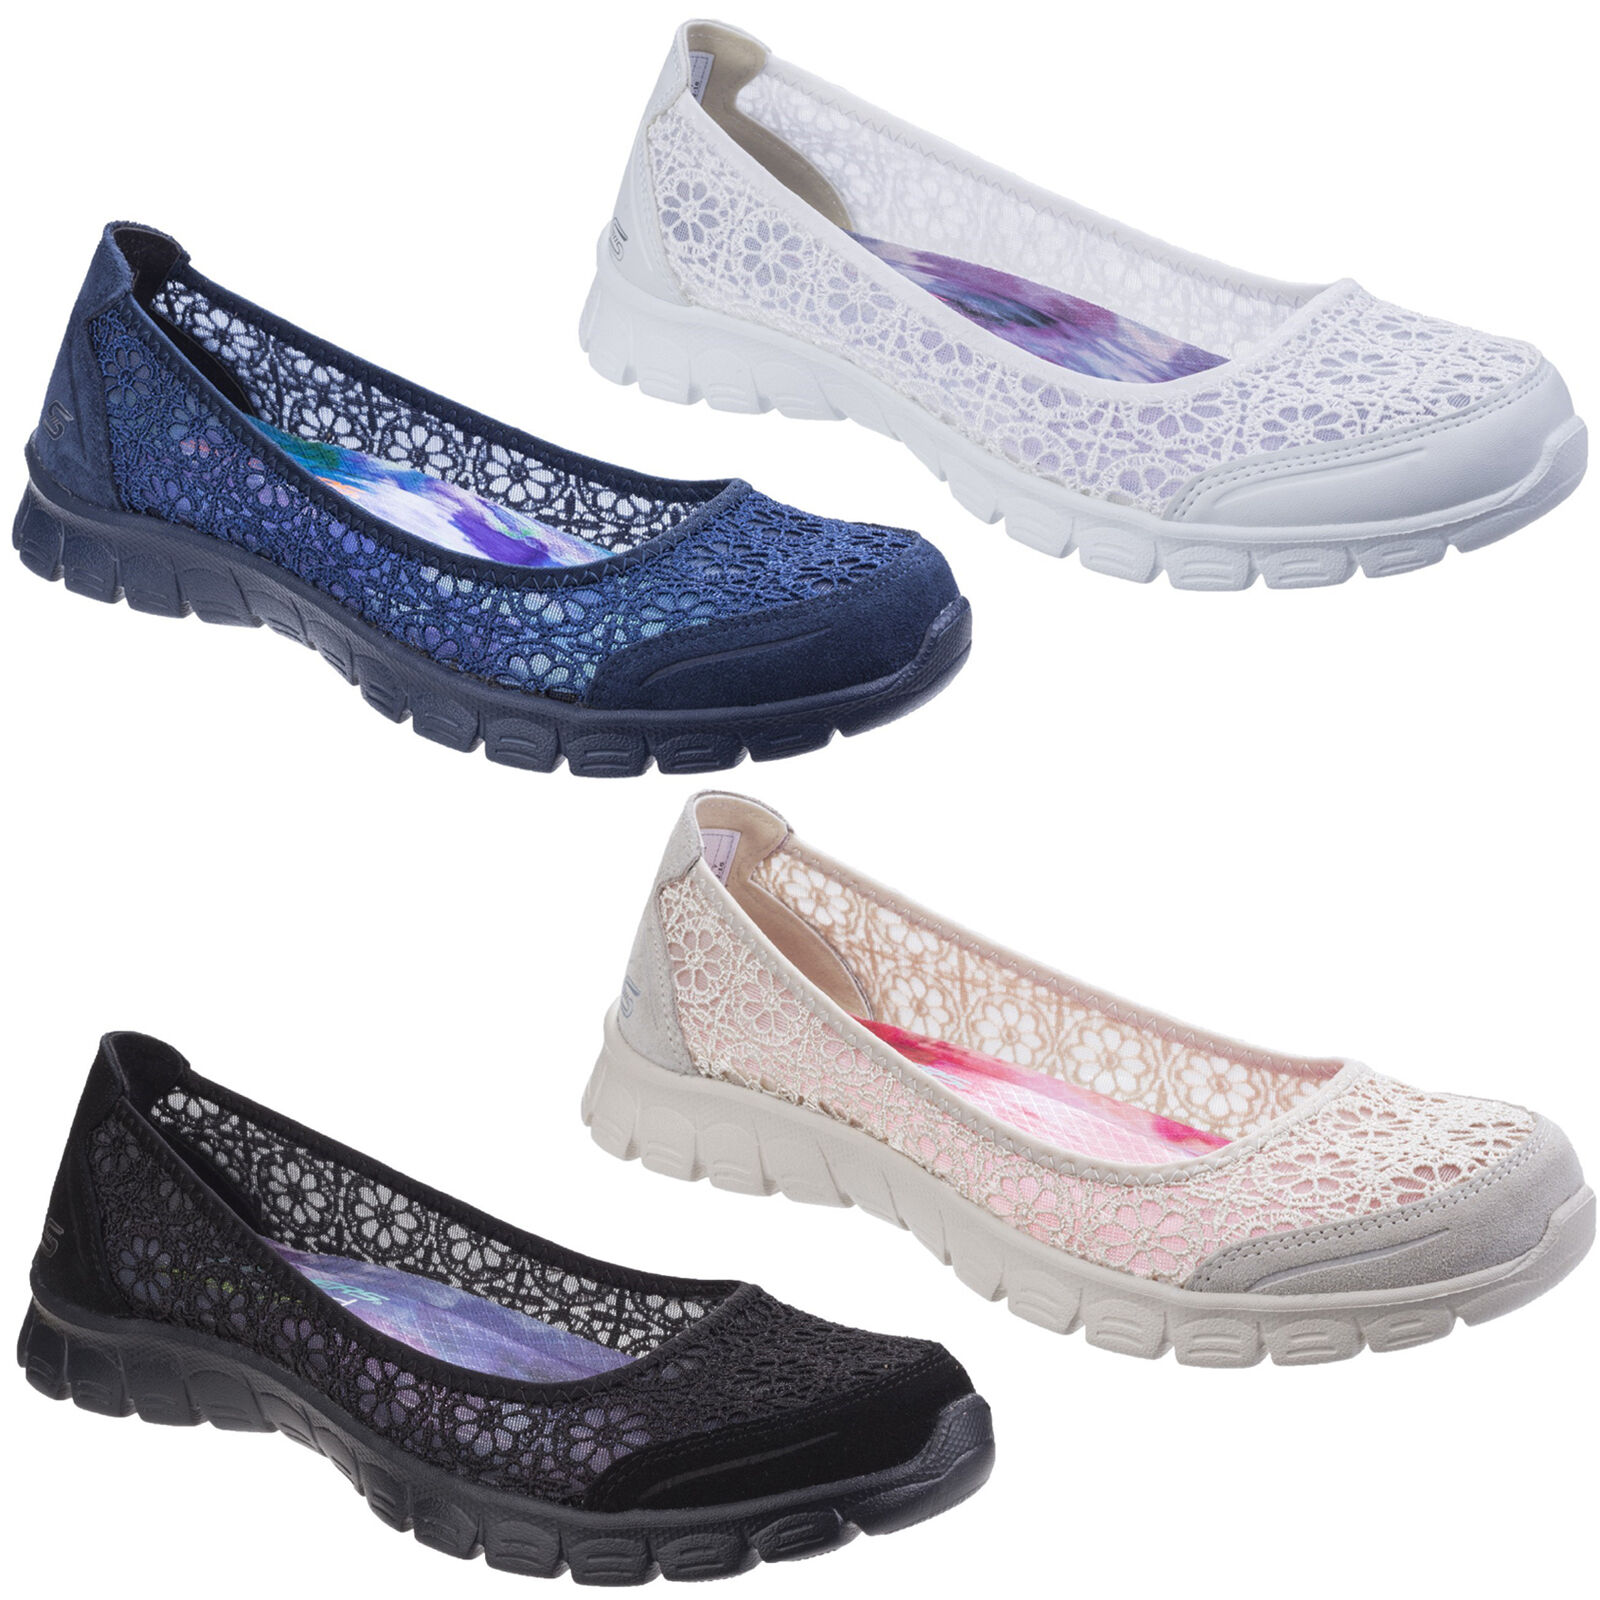 Skechers EZ Flex 3.0 Majestät Foam Flache Damen Memory Foam Majestät Slip On Schuhe uk3-8 8db859